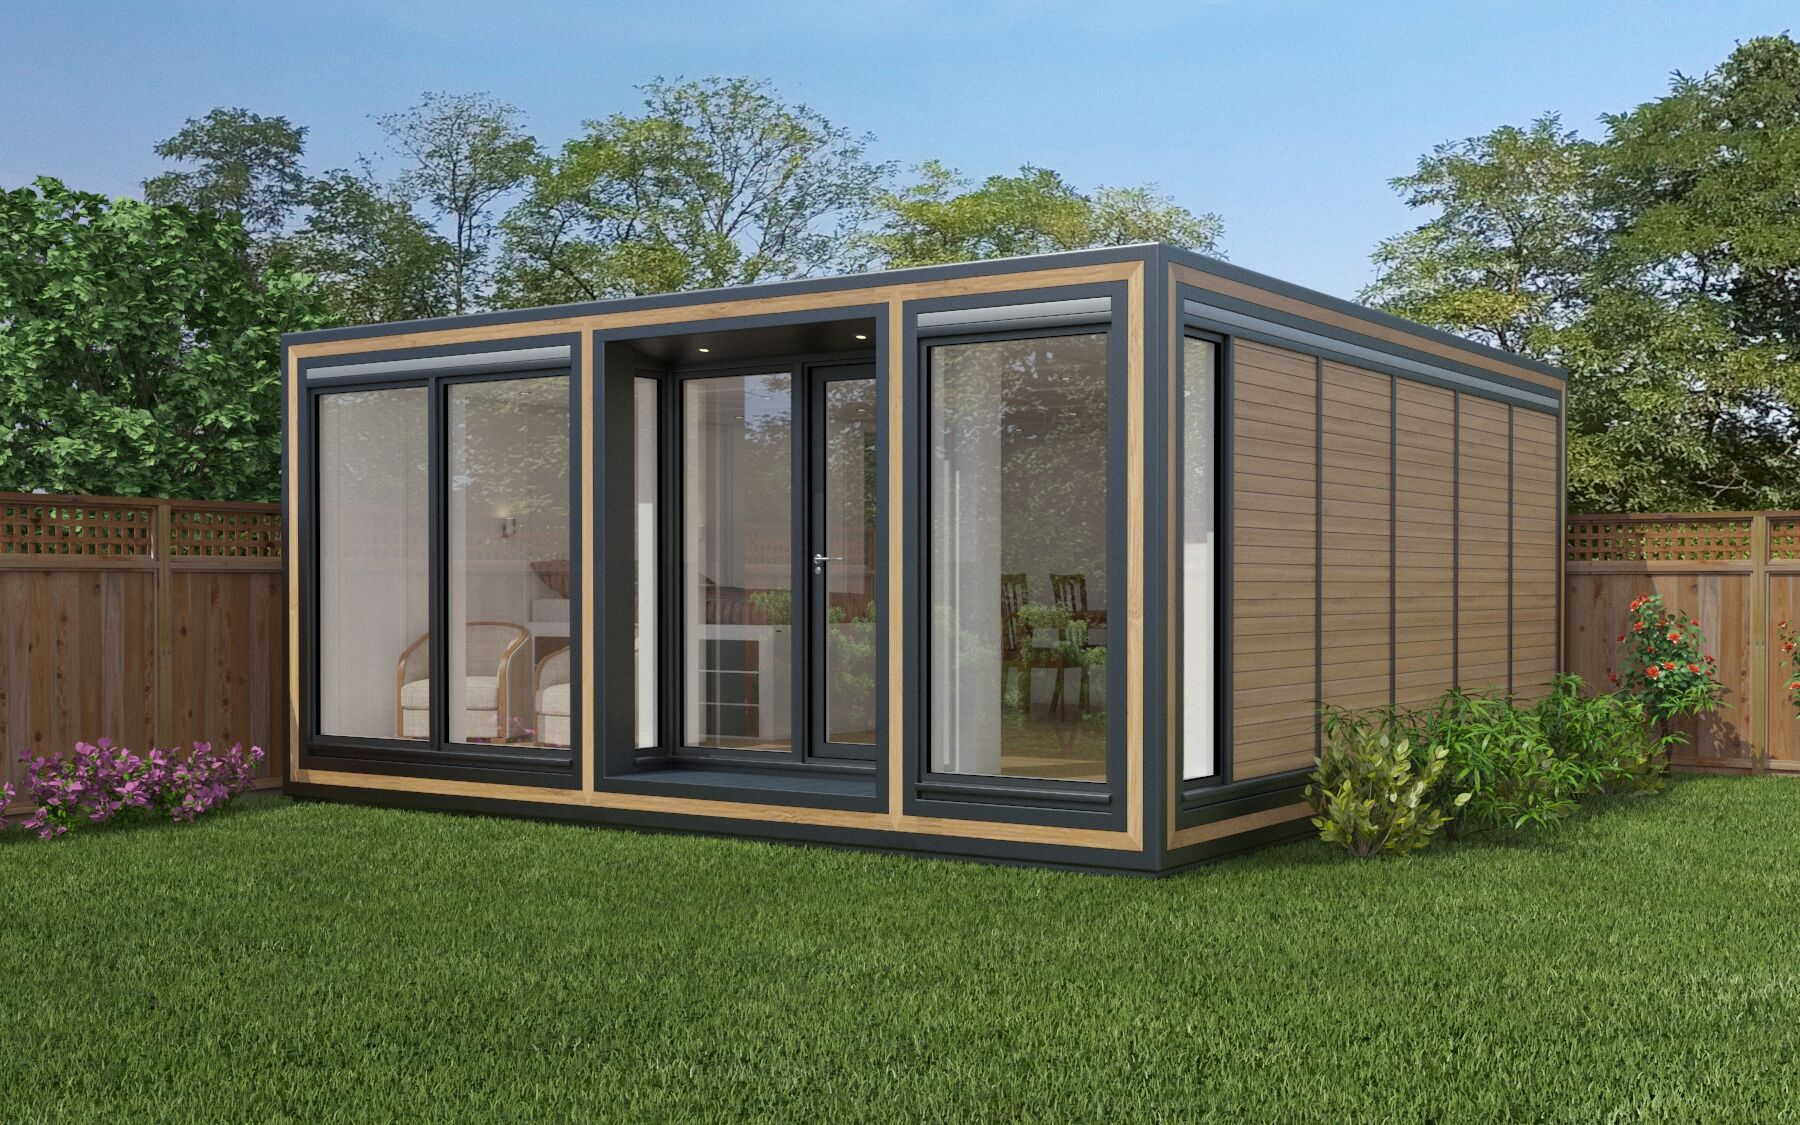 The Zedbox 555 is a beautiful self-contained garden annexe for all the family to enjoy.